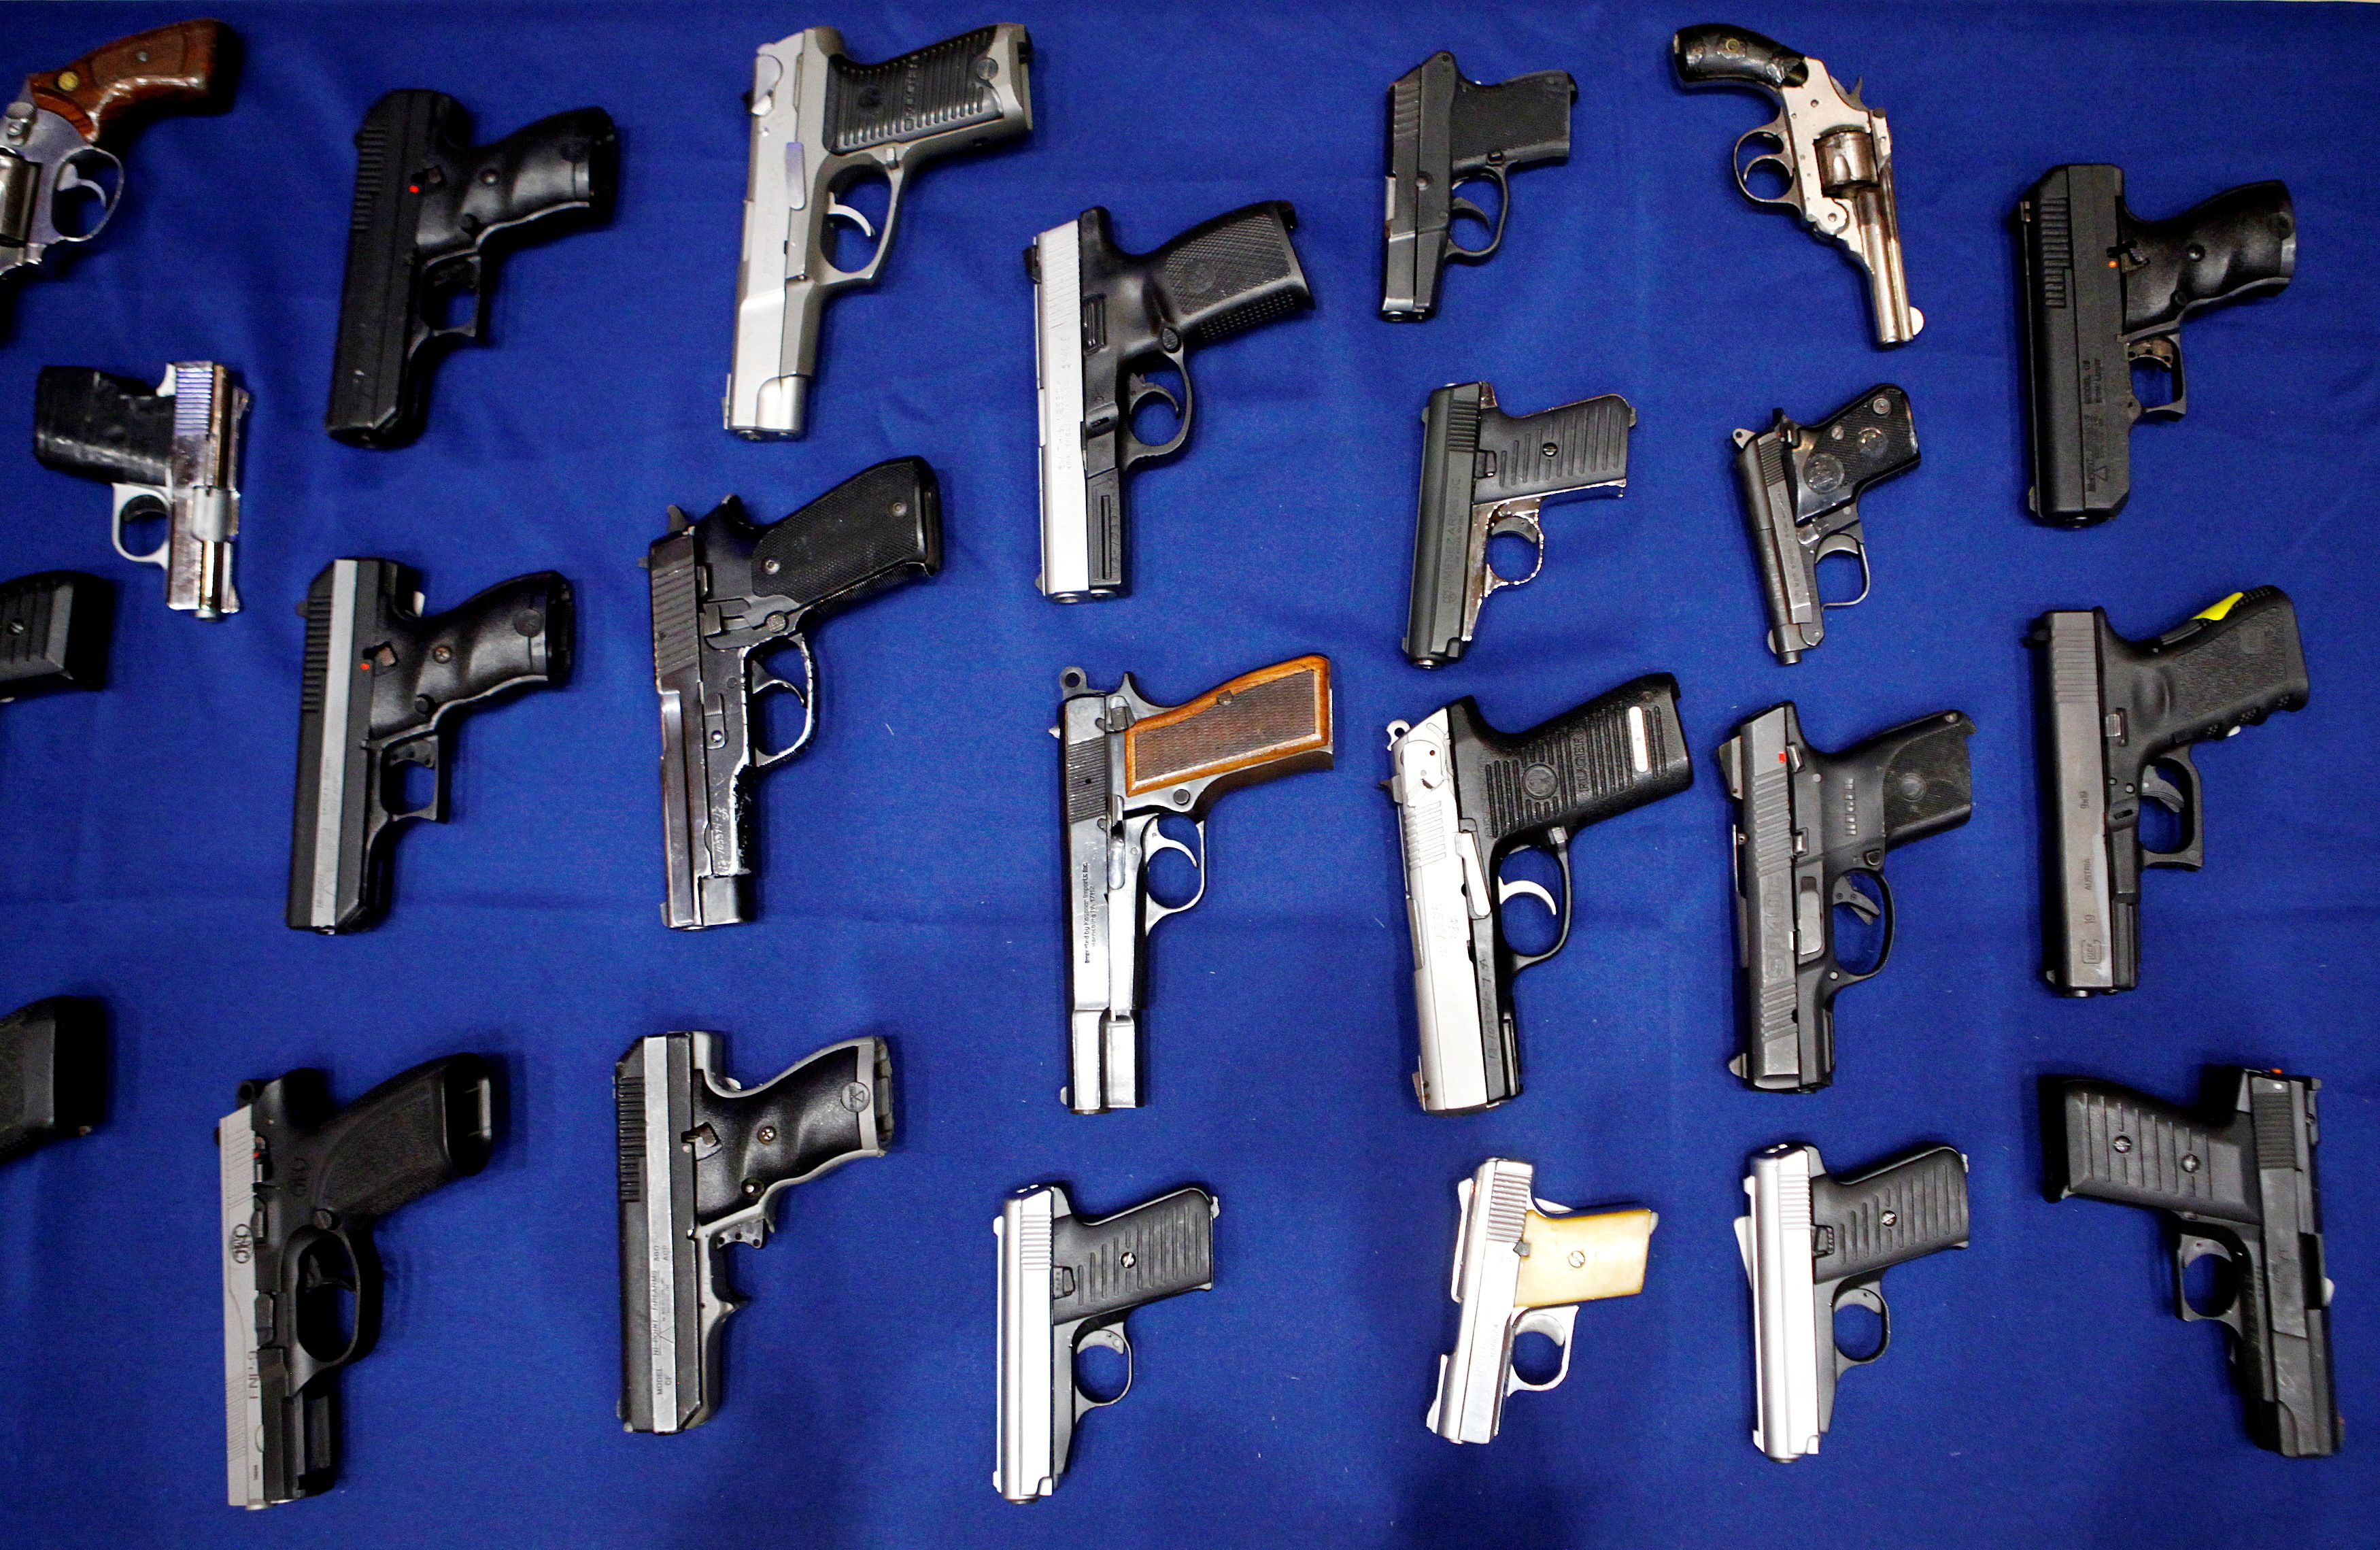 Seized handguns are pictured at the police headquarters in New York, August 19, 2013. REUTERS/Eric Thayer